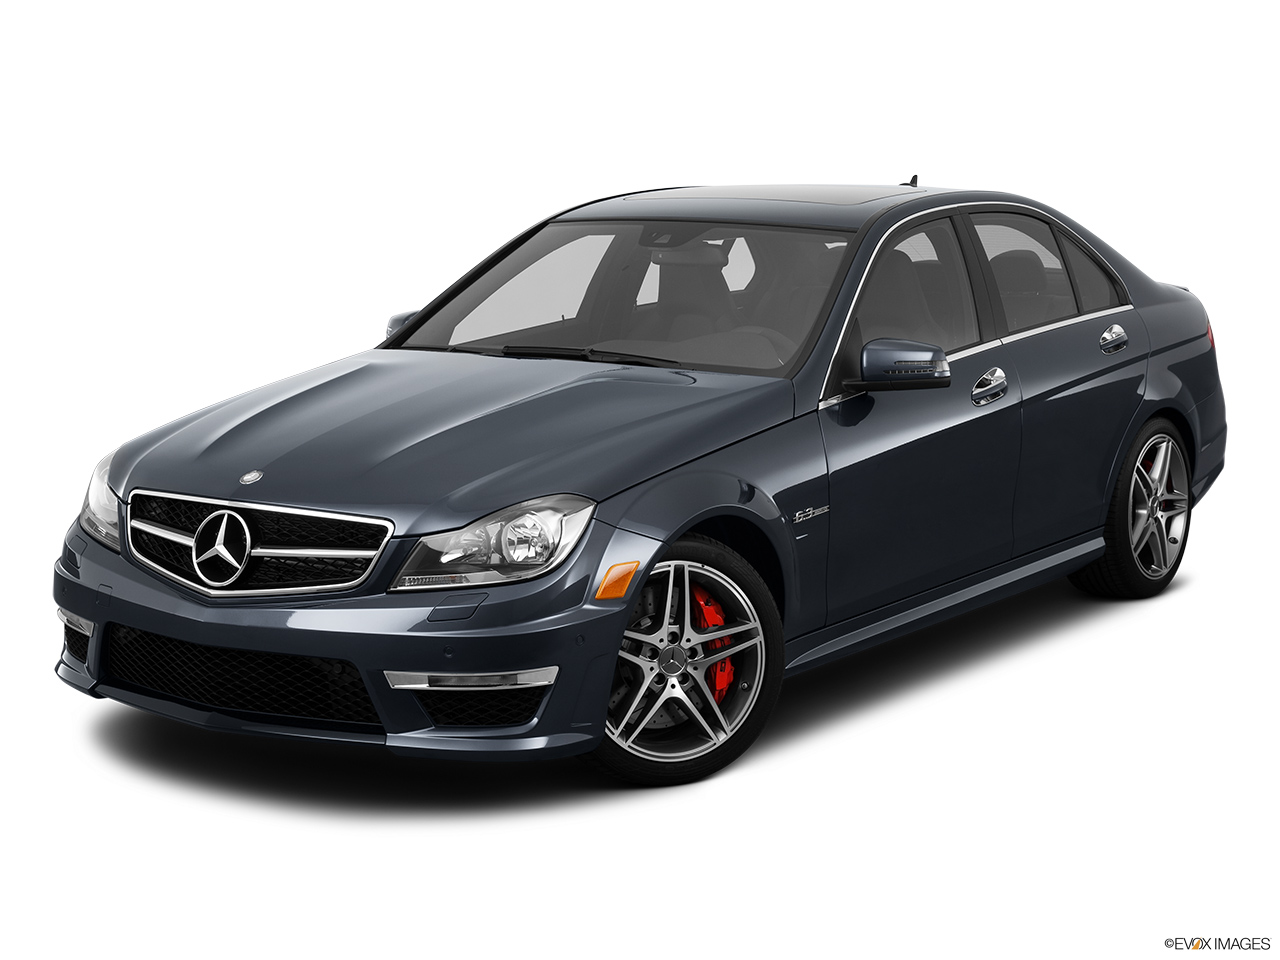 2014 mercedes benz c class coupe c63 amg rwd for 2014 mercedes benz c63 amg coupe